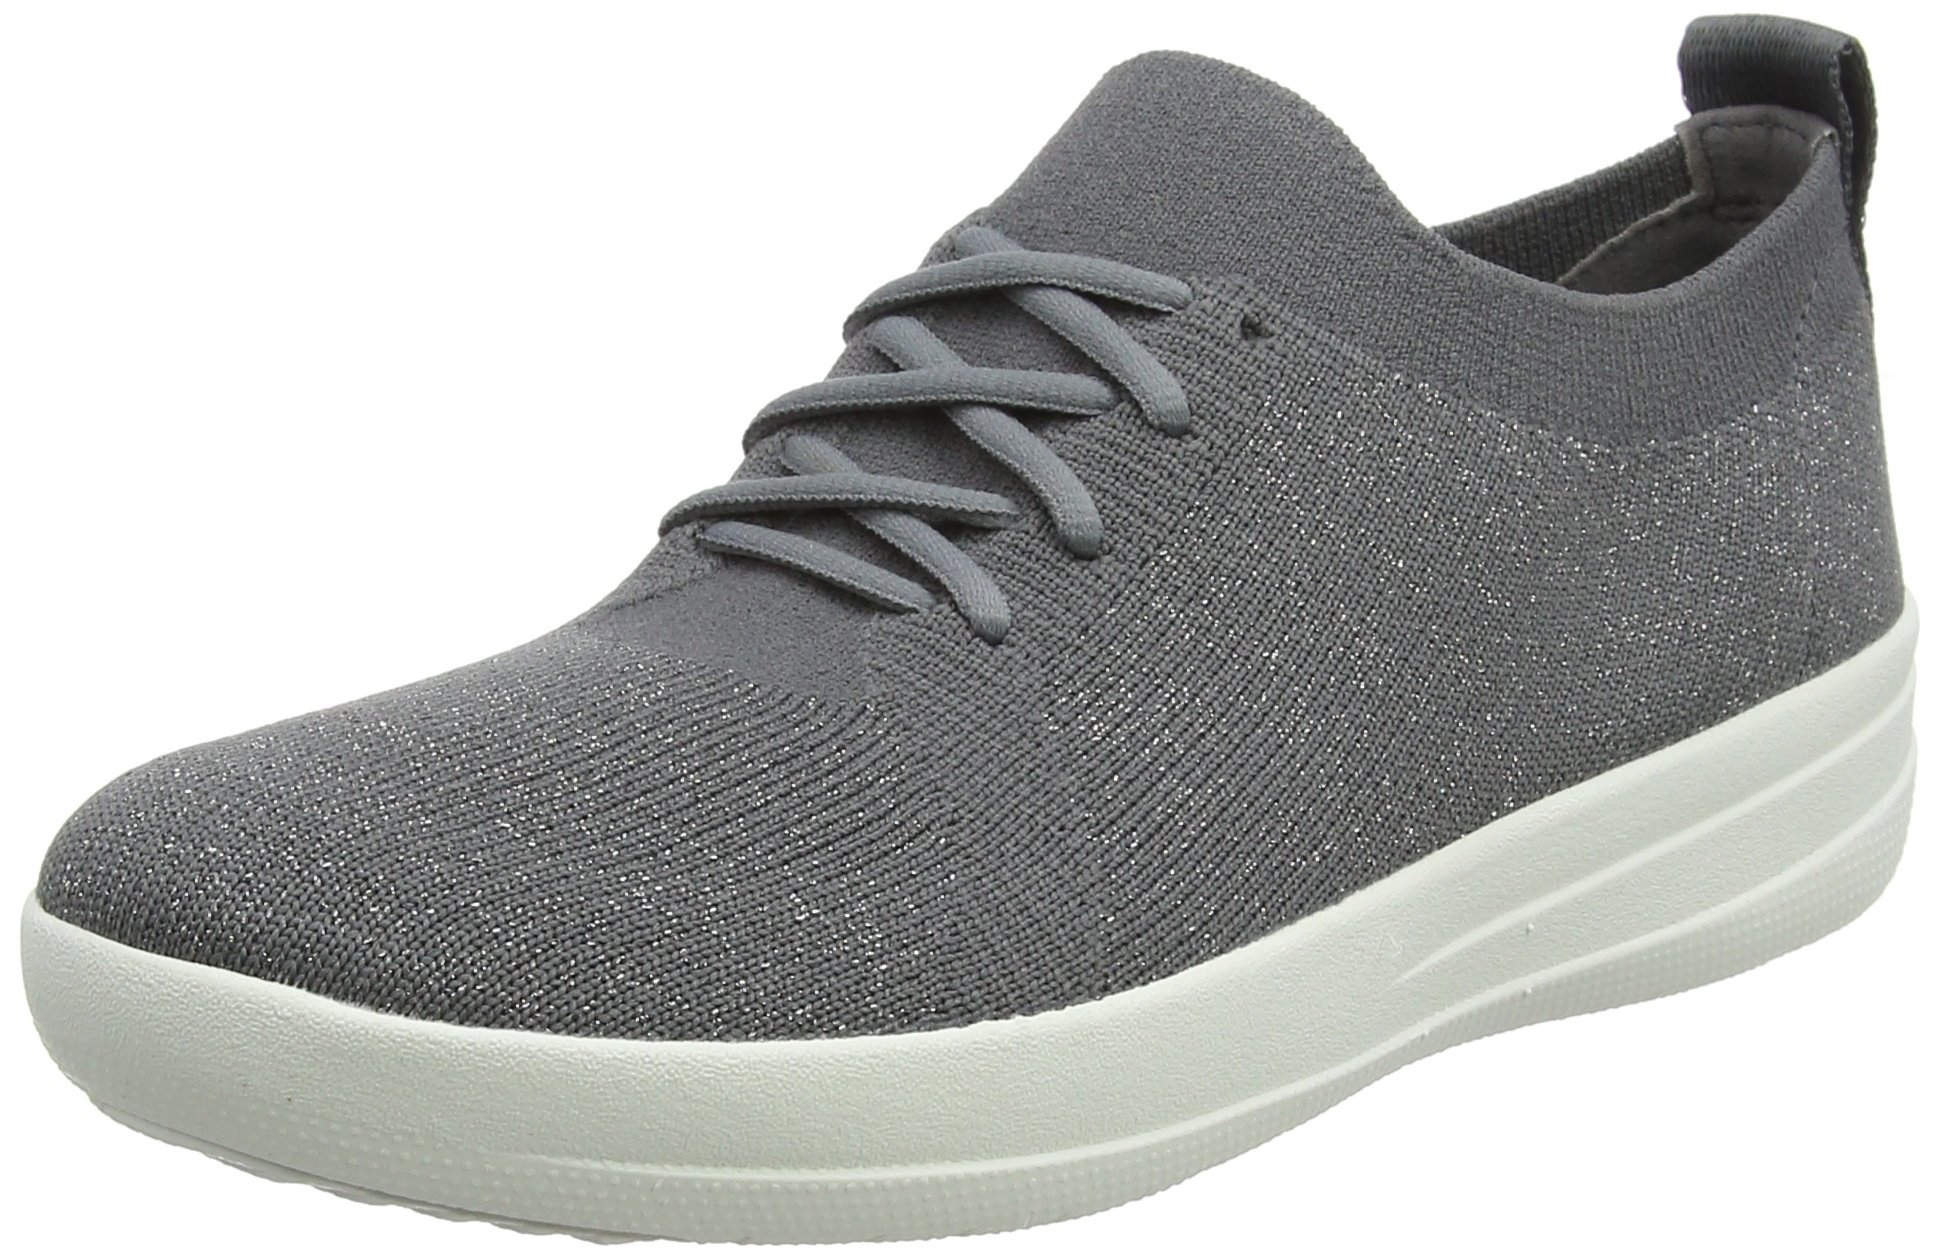 FitFlop Women's F-Sporty Uberknit Sneakers Charcoal/Metallic Pewter 8 M US